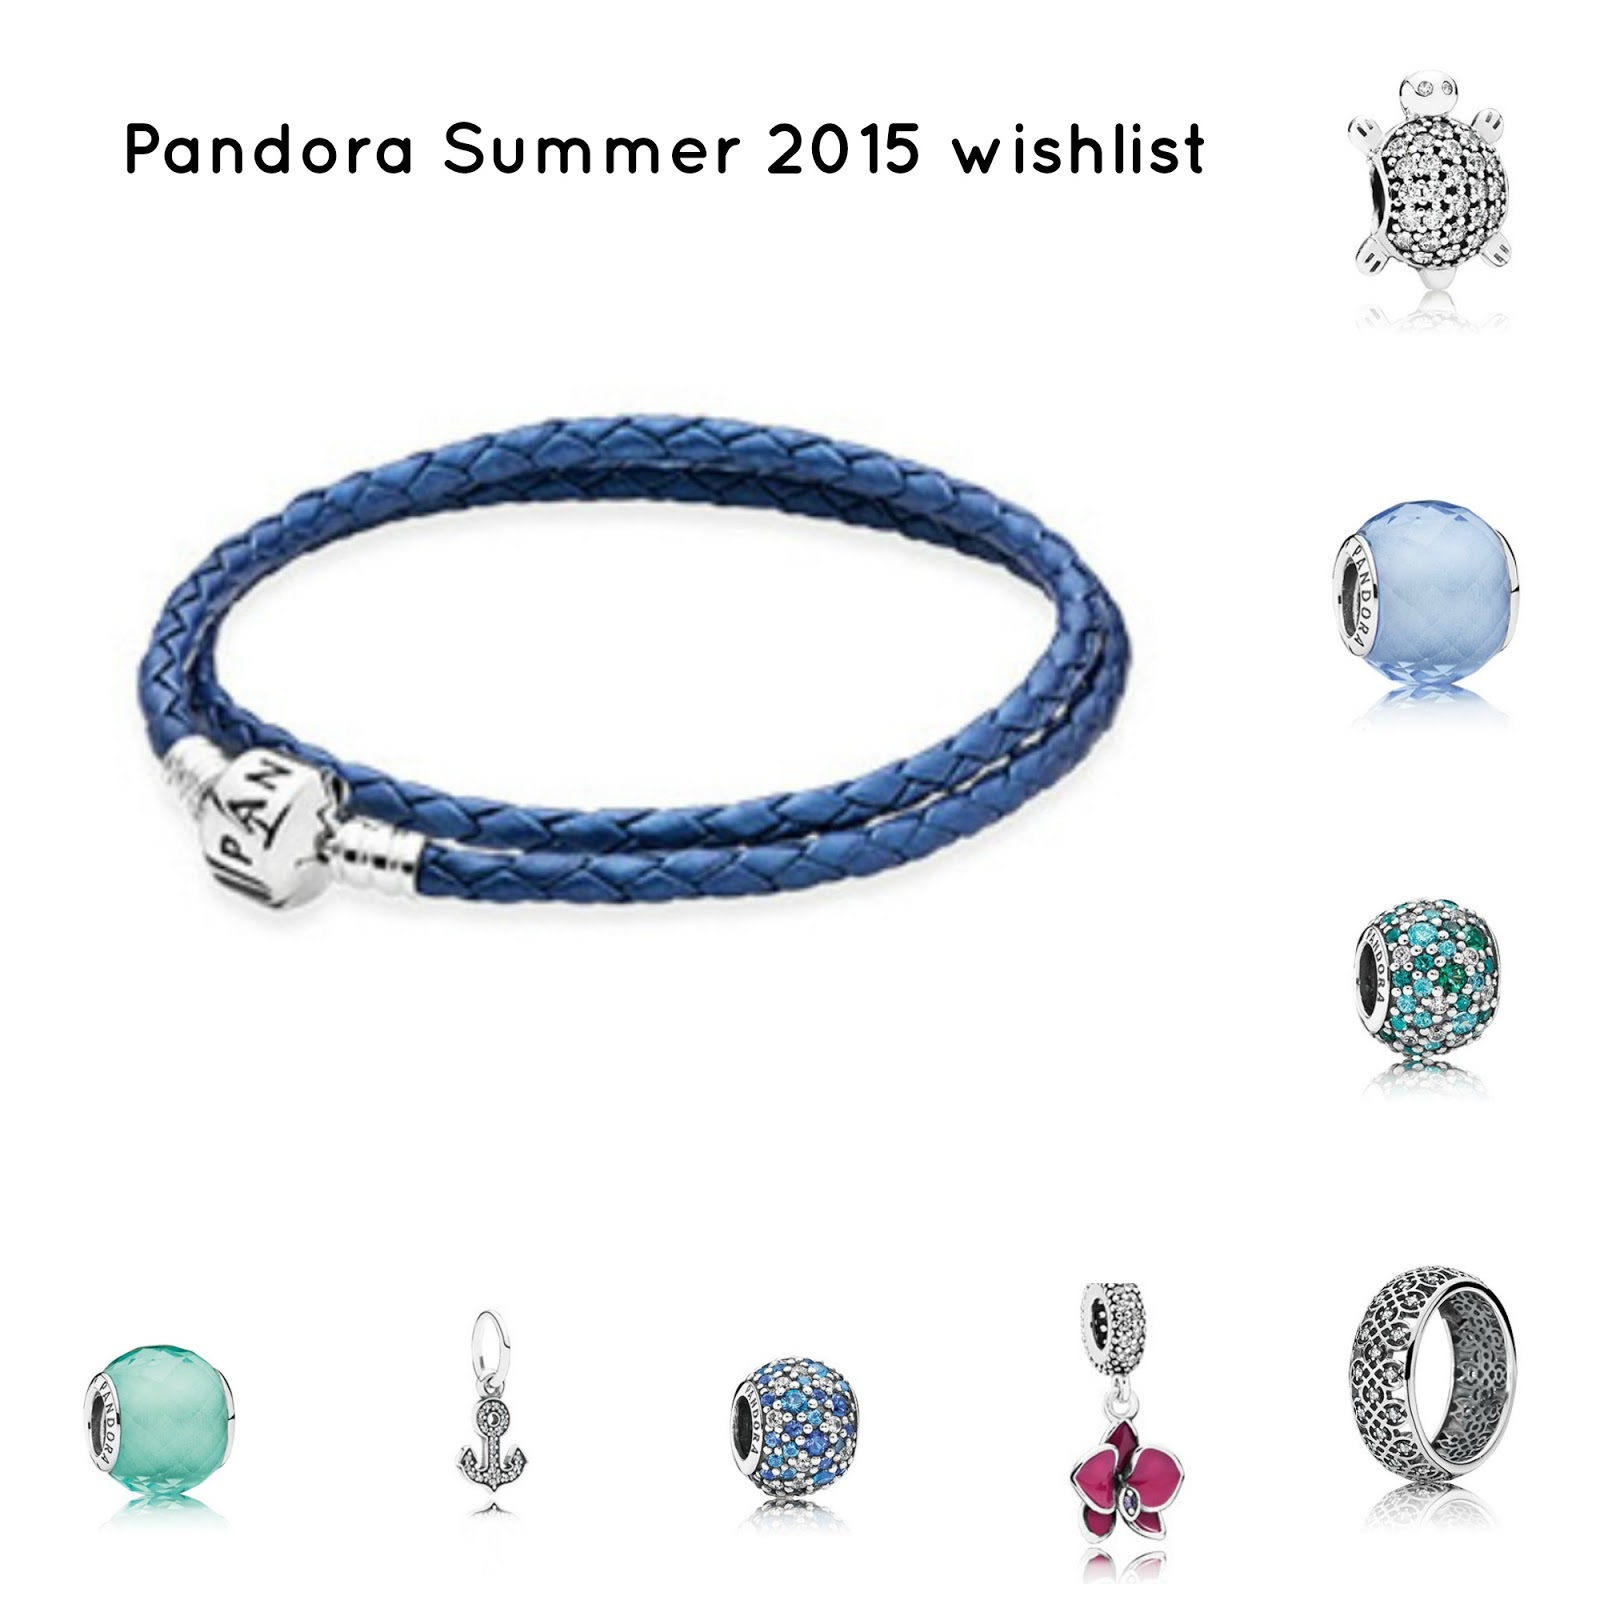 Pandora Summer 2015 collection wishlist - Monica's beauty in